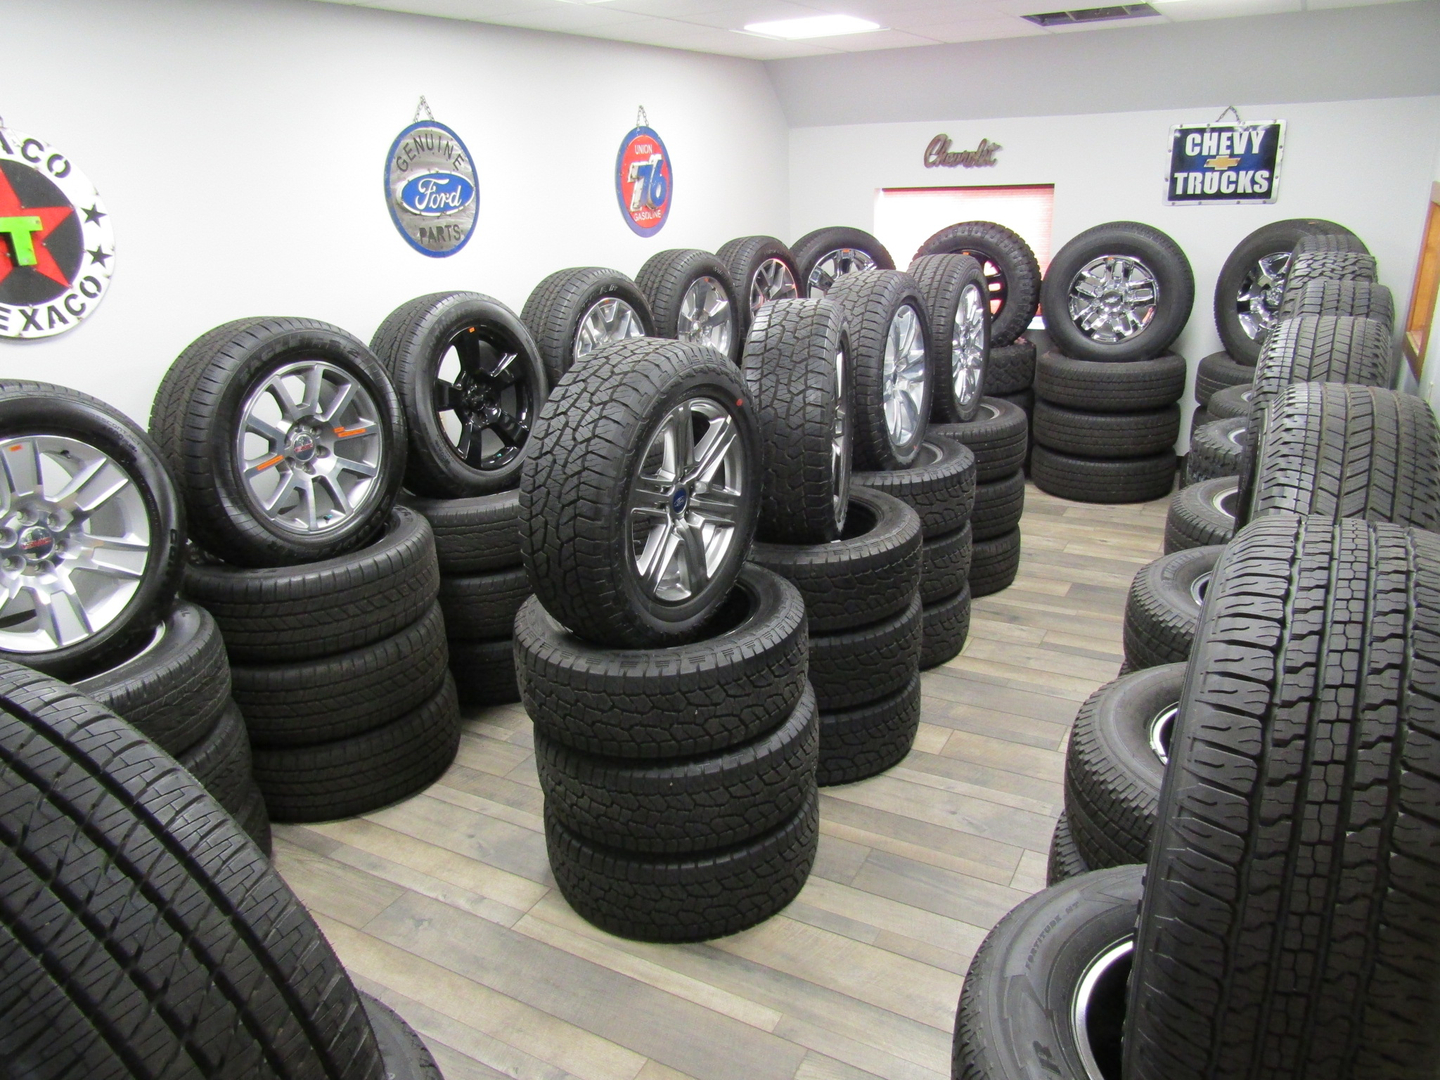 Rpm Takeoffs Factory Takeoffs Wheels And Tires Wheels And Tires Packages